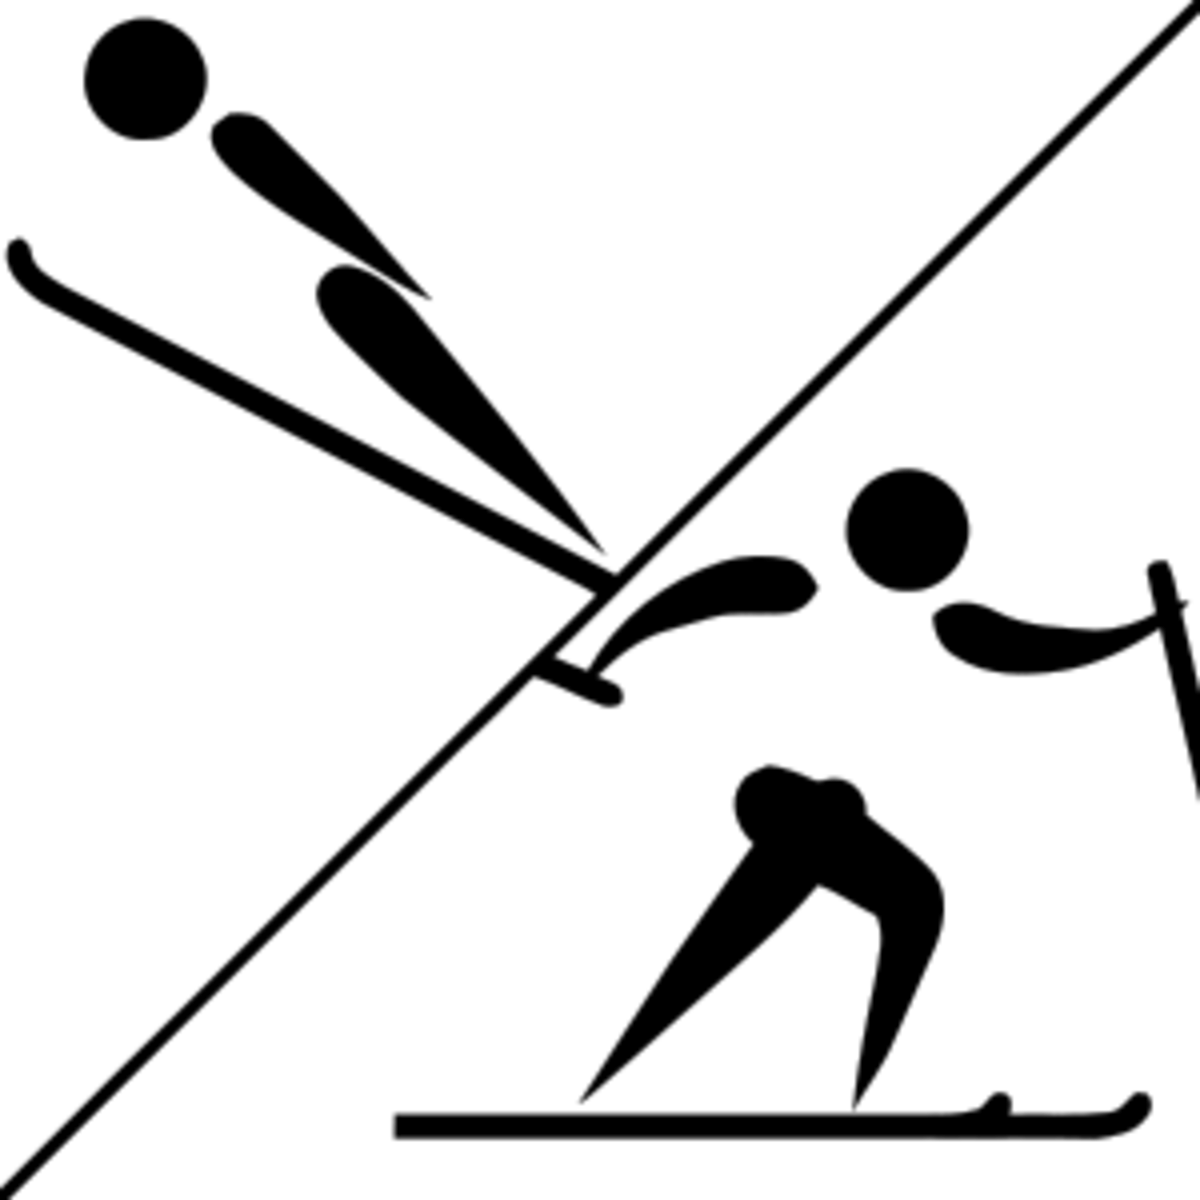 Nordic combined pictogram